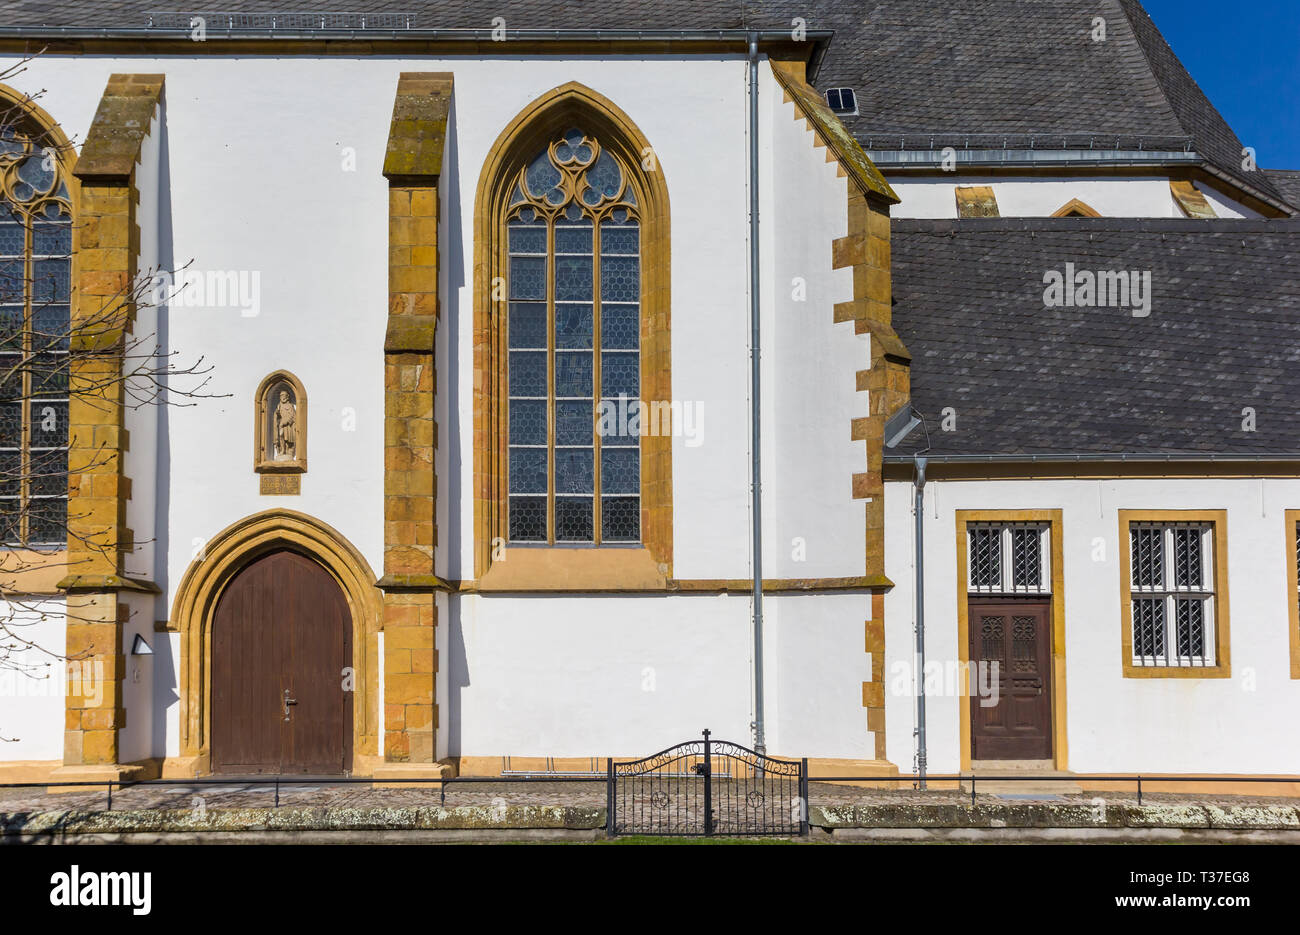 Doors and windows of the Franziskaner monastery in Wiedenbruck, Germany - Stock Image